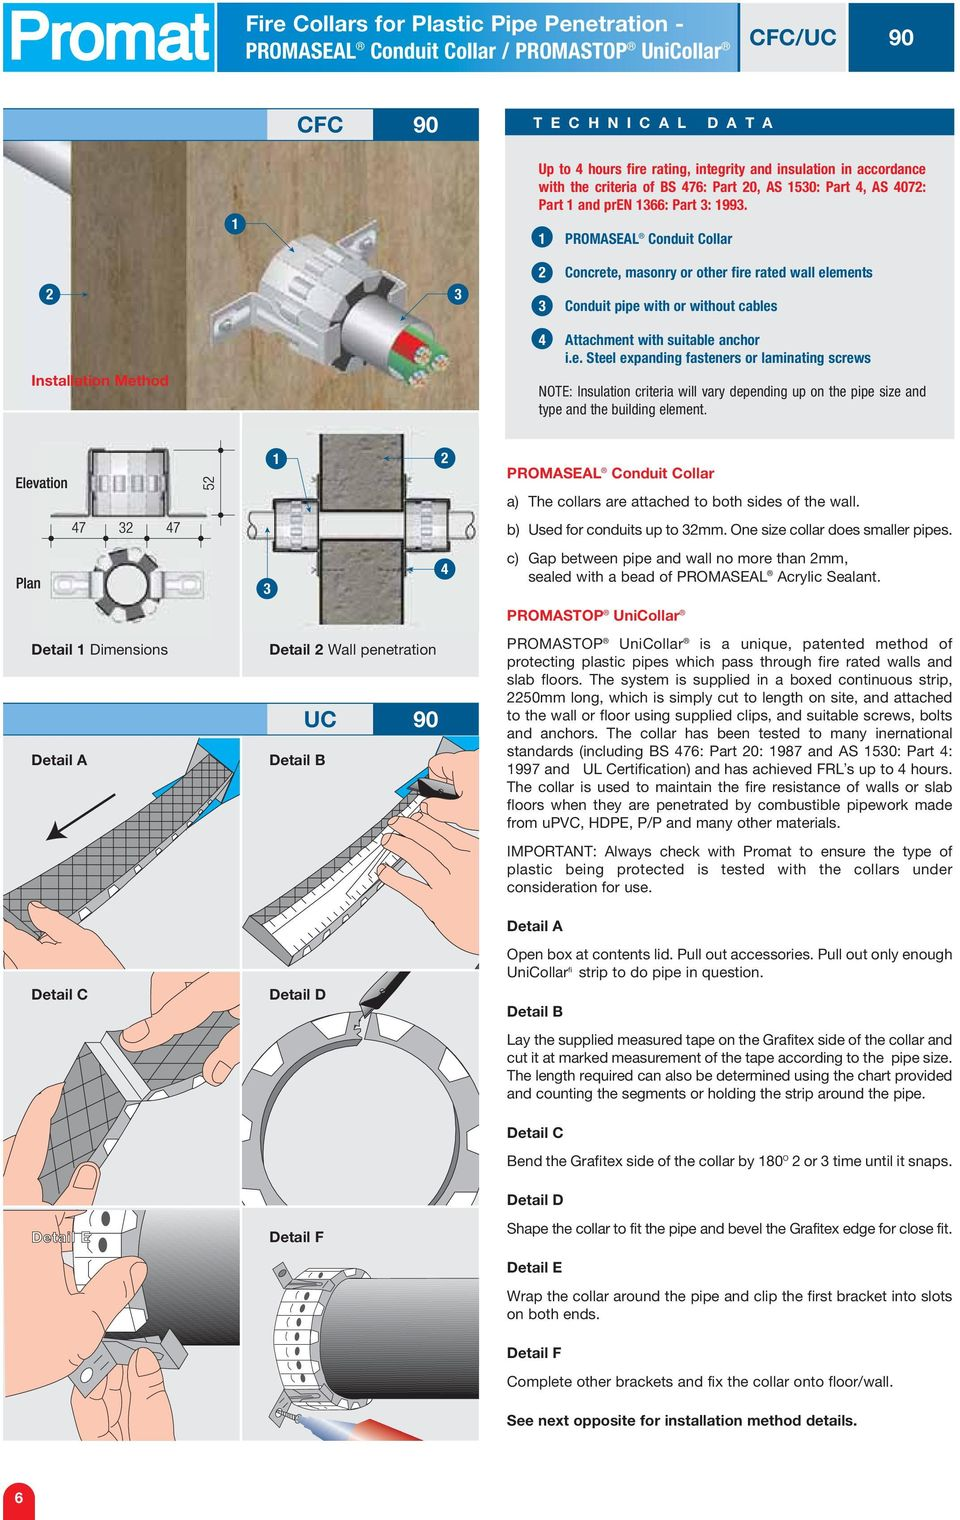 Fire Collars For Plastic Pipe Penetration - PDF